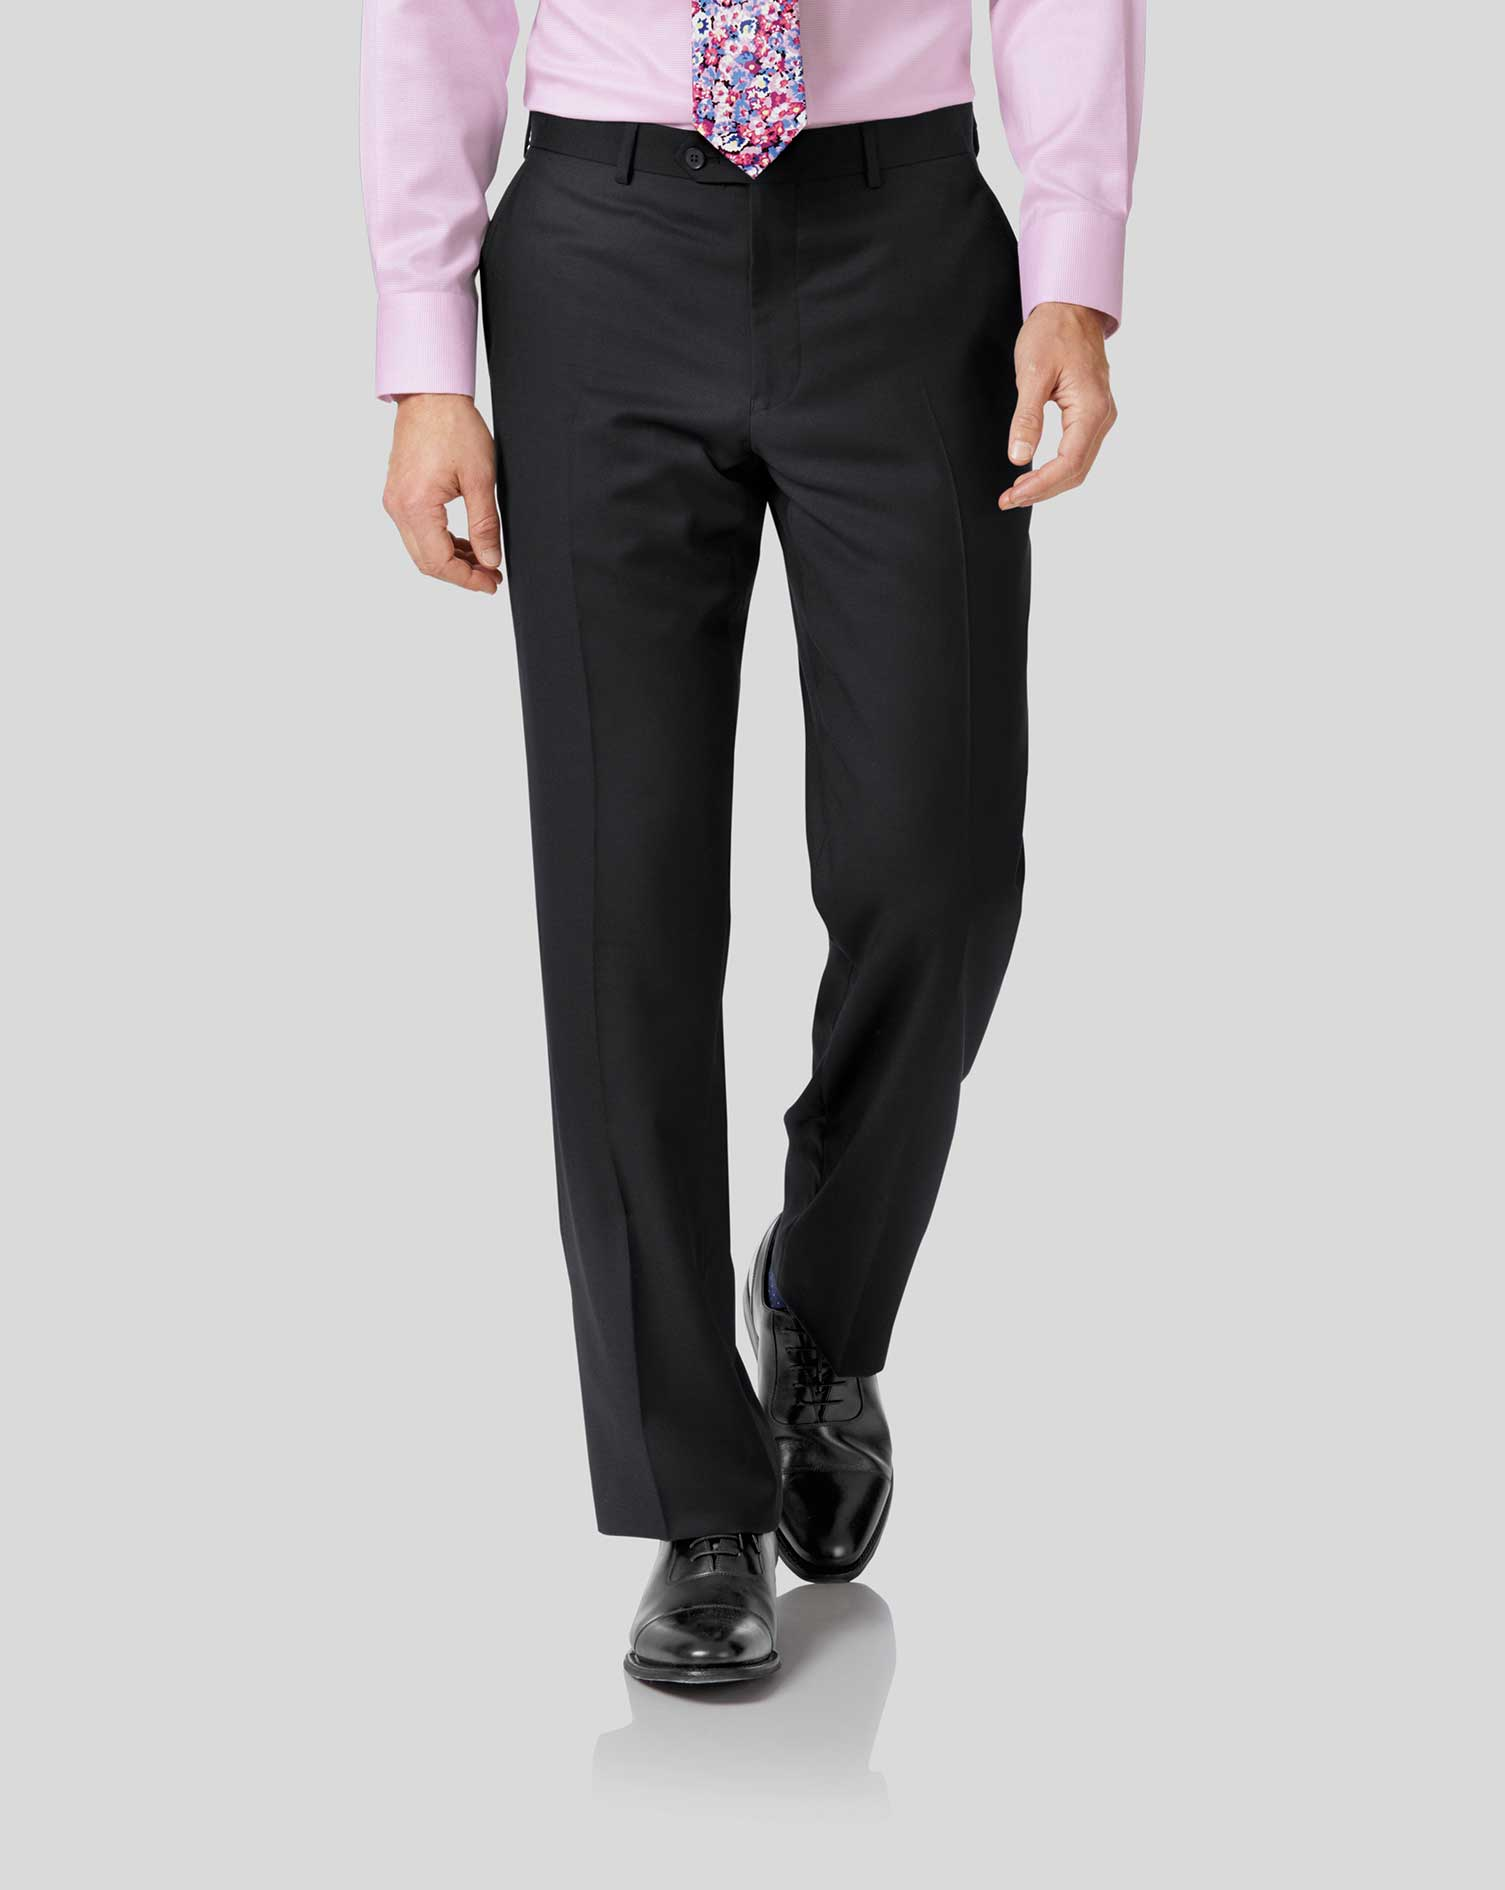 Black Classic Fit Twill Business Suit Trousers Size W42 L32 by Charles Tyrwhitt